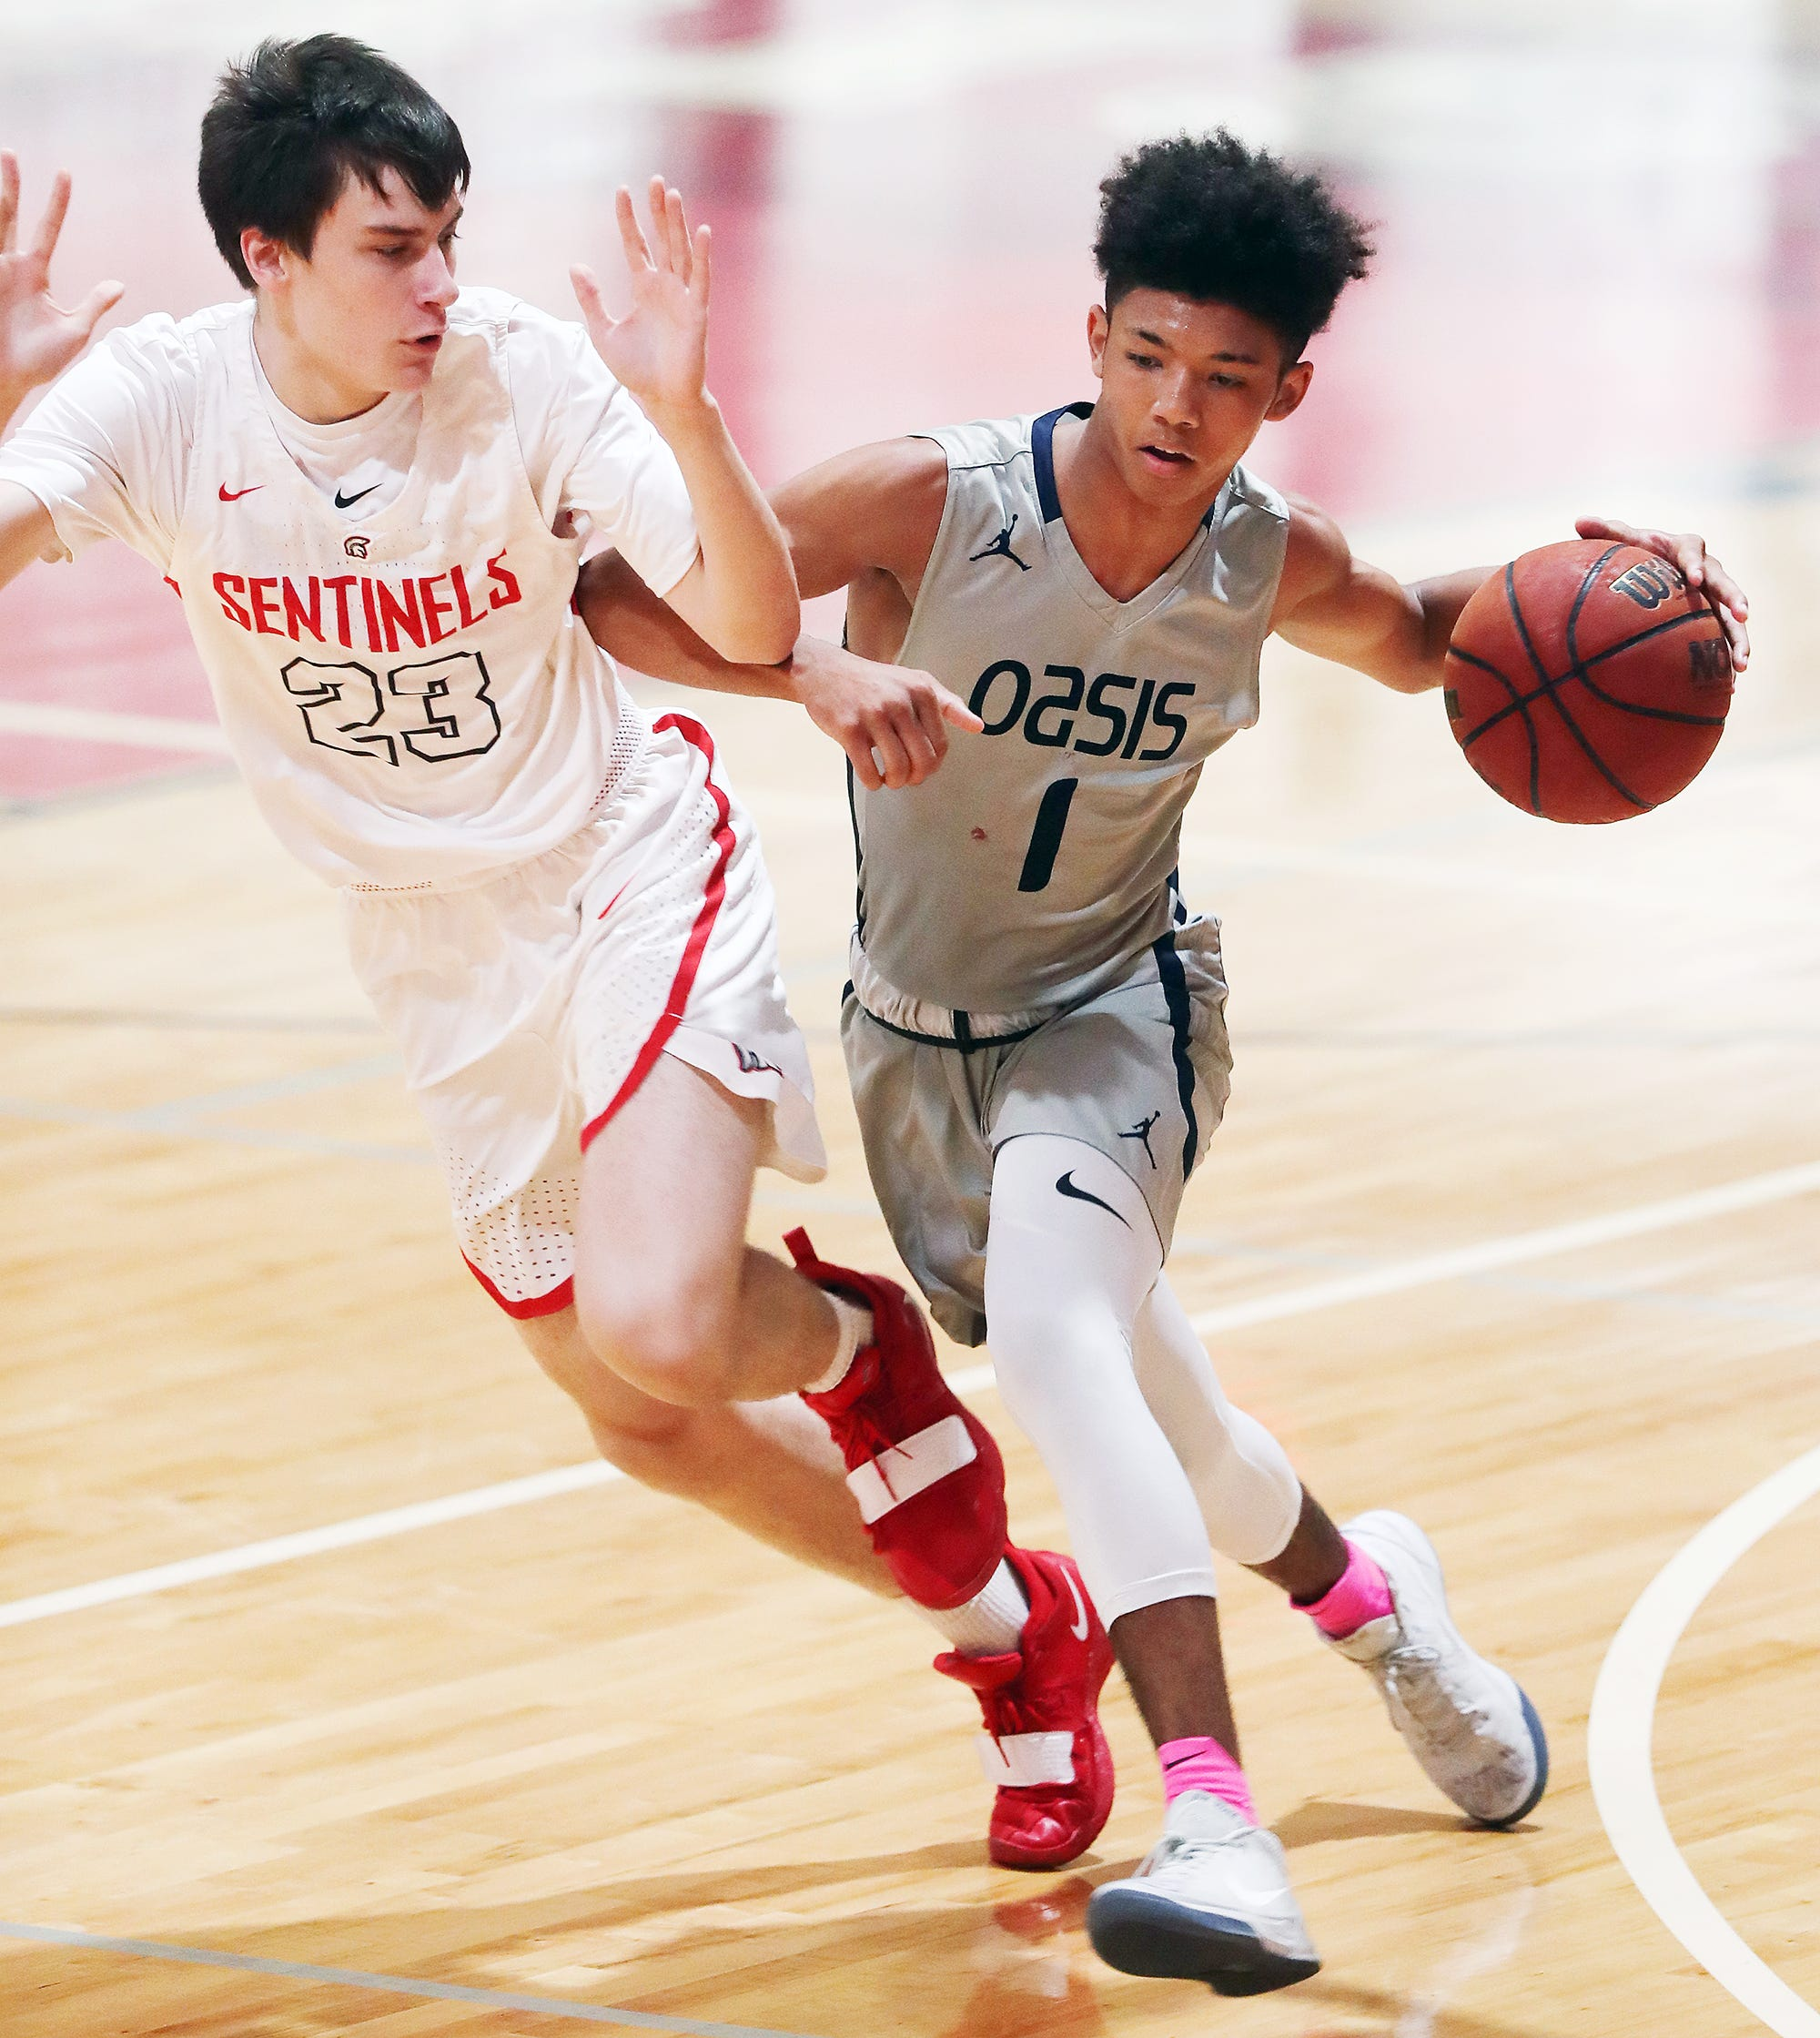 Oasis Charter High School senior point guard Taylon Hutchins, who was originally suspended for six weeks for allegedly cursing at an official during a Jan. 8 game, won his Florida High School Athletic Association sectional appeal in Bradenton on Thursday morning. He was immediately reinstated and returned to the court Thursday night at Evangelical Christian School in Fort Myers.